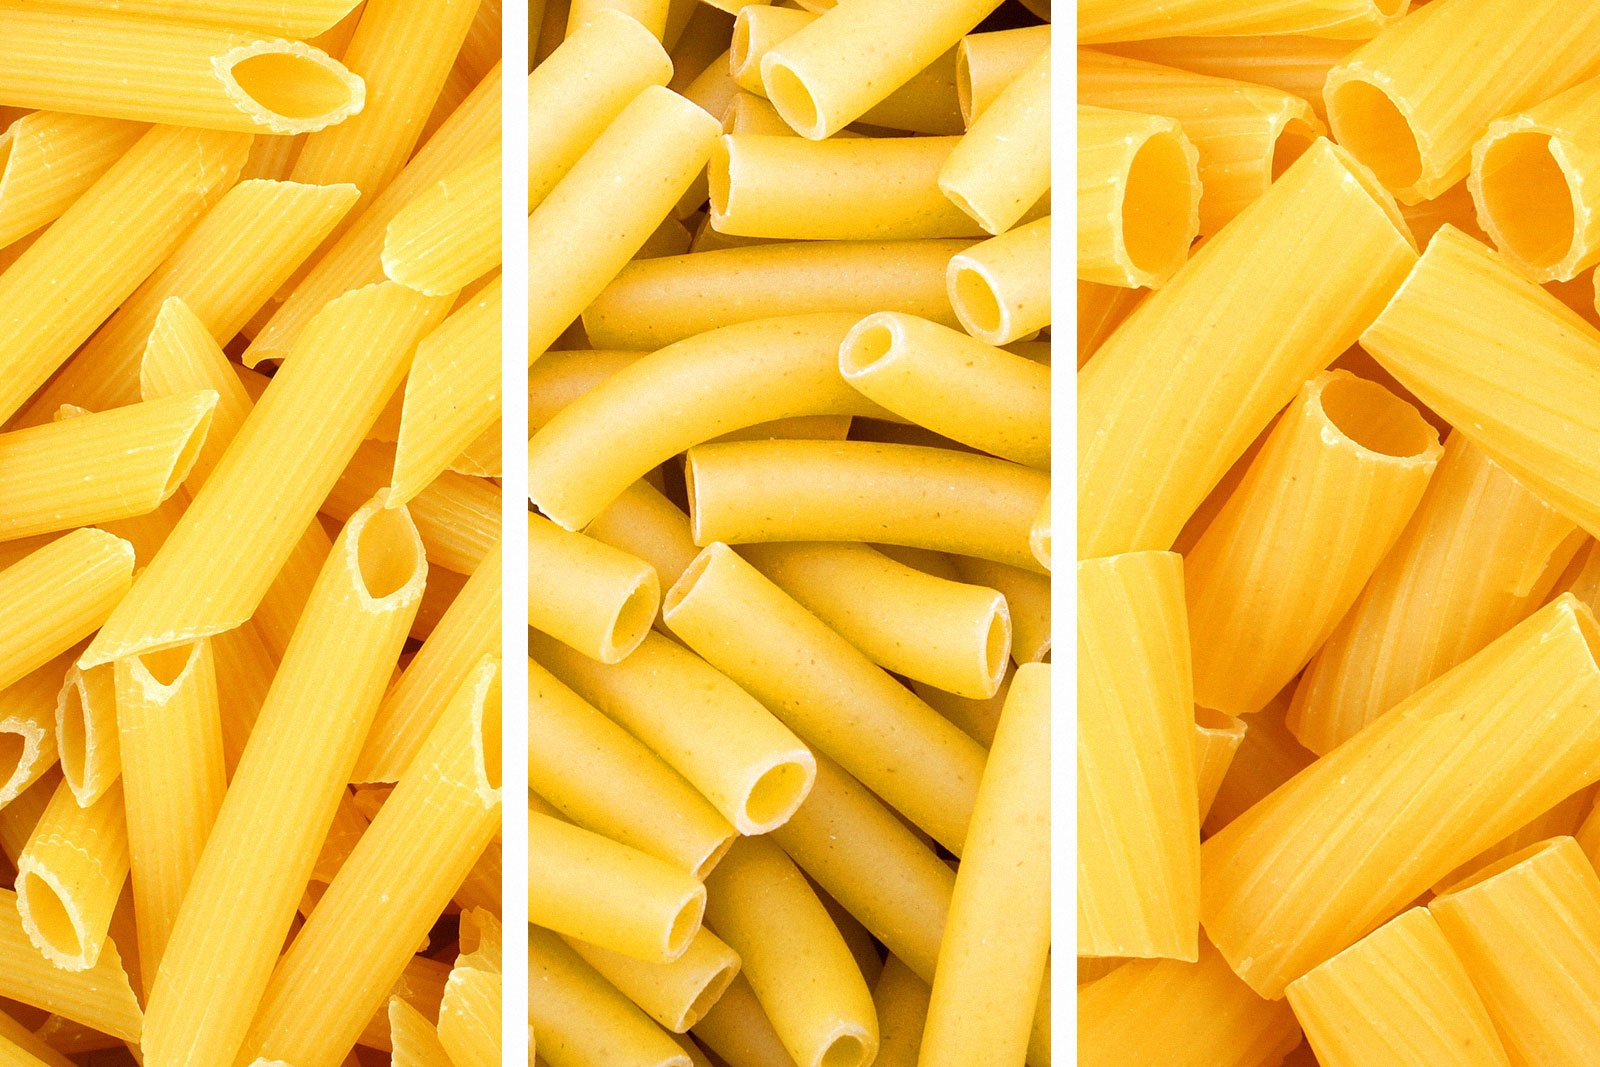 upclose shot of uncooked penne, ziti and rigatoni